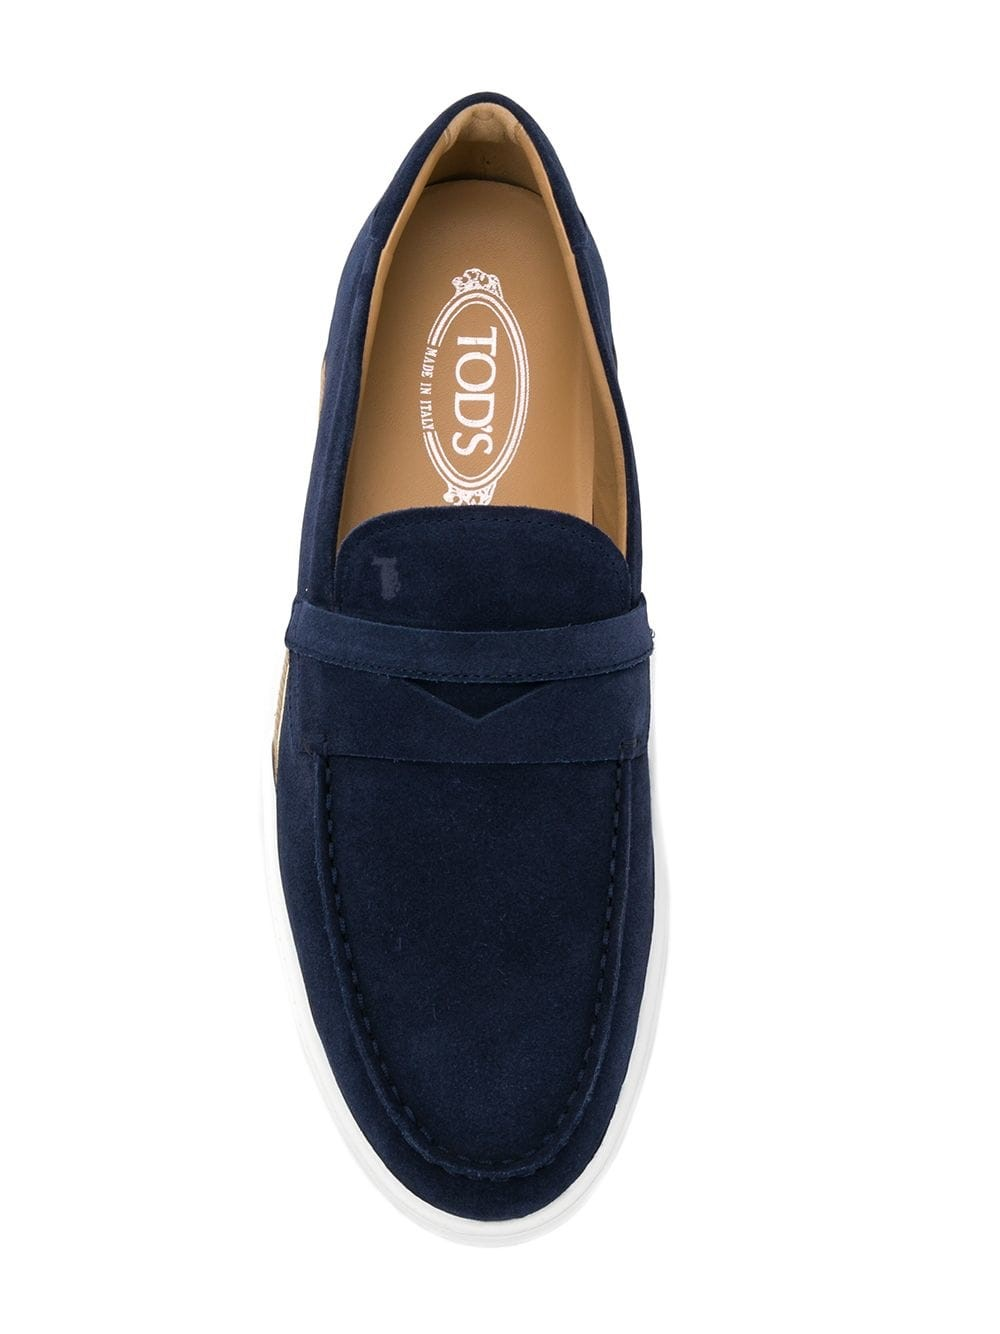 6aa5cef04 tod's SLIPPERS available on montiboutique.com - 26485